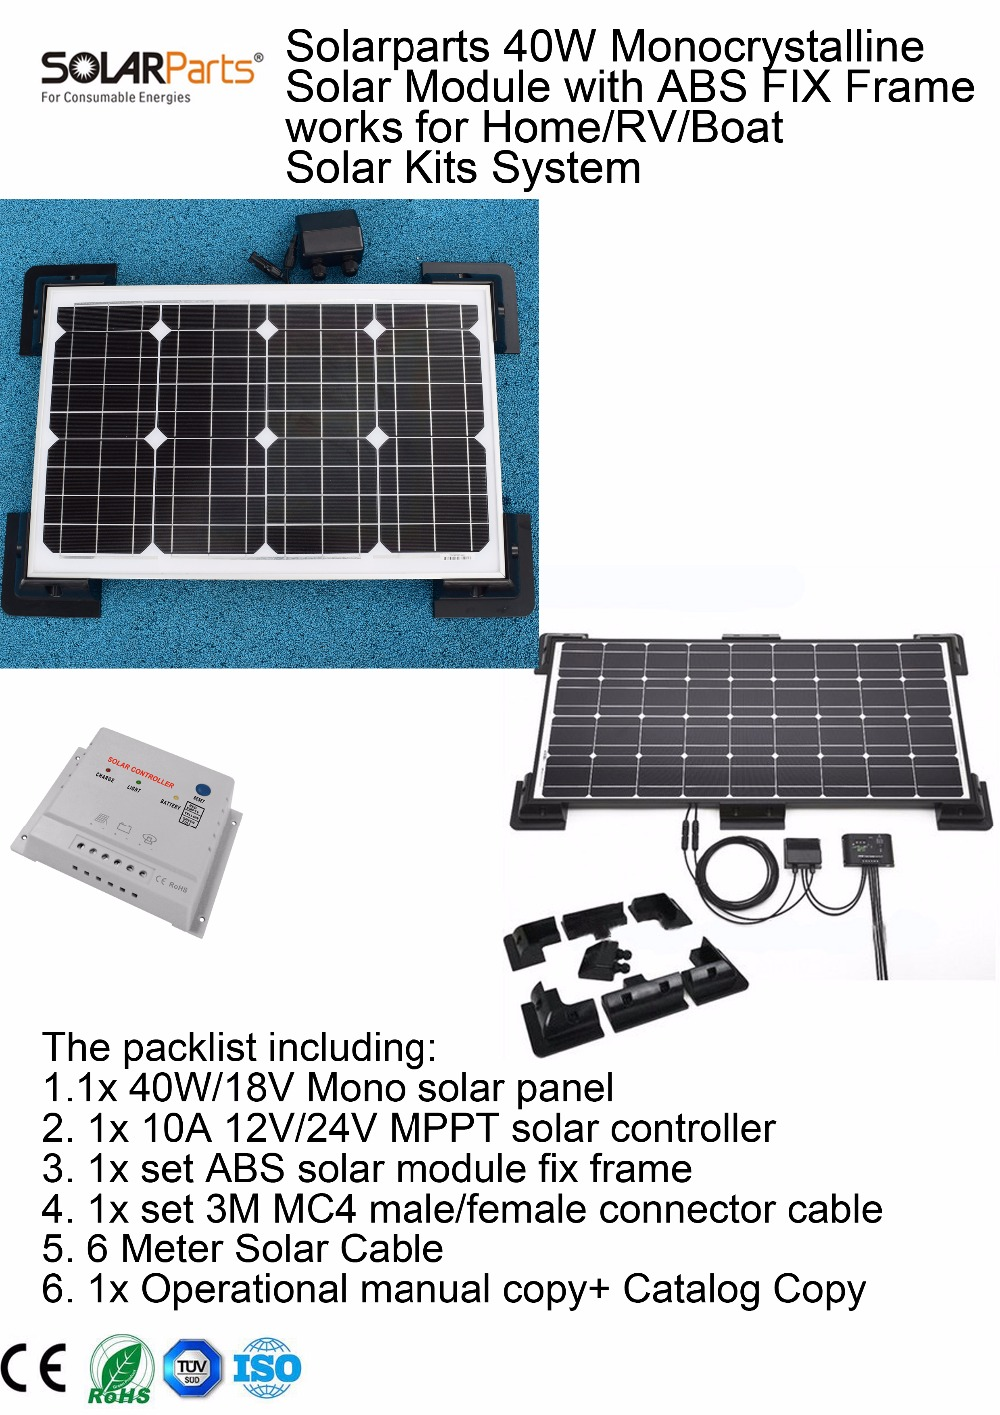 BOGUANG 40W Monocrystalline Solar Module by ABS fix frame solar cell factory cheap selling 12V solar panel RV Marine Boat solarparts 2x100w monocrystalline solar module high efficiency back contact solar panel cell system diy kits rv marine home camp